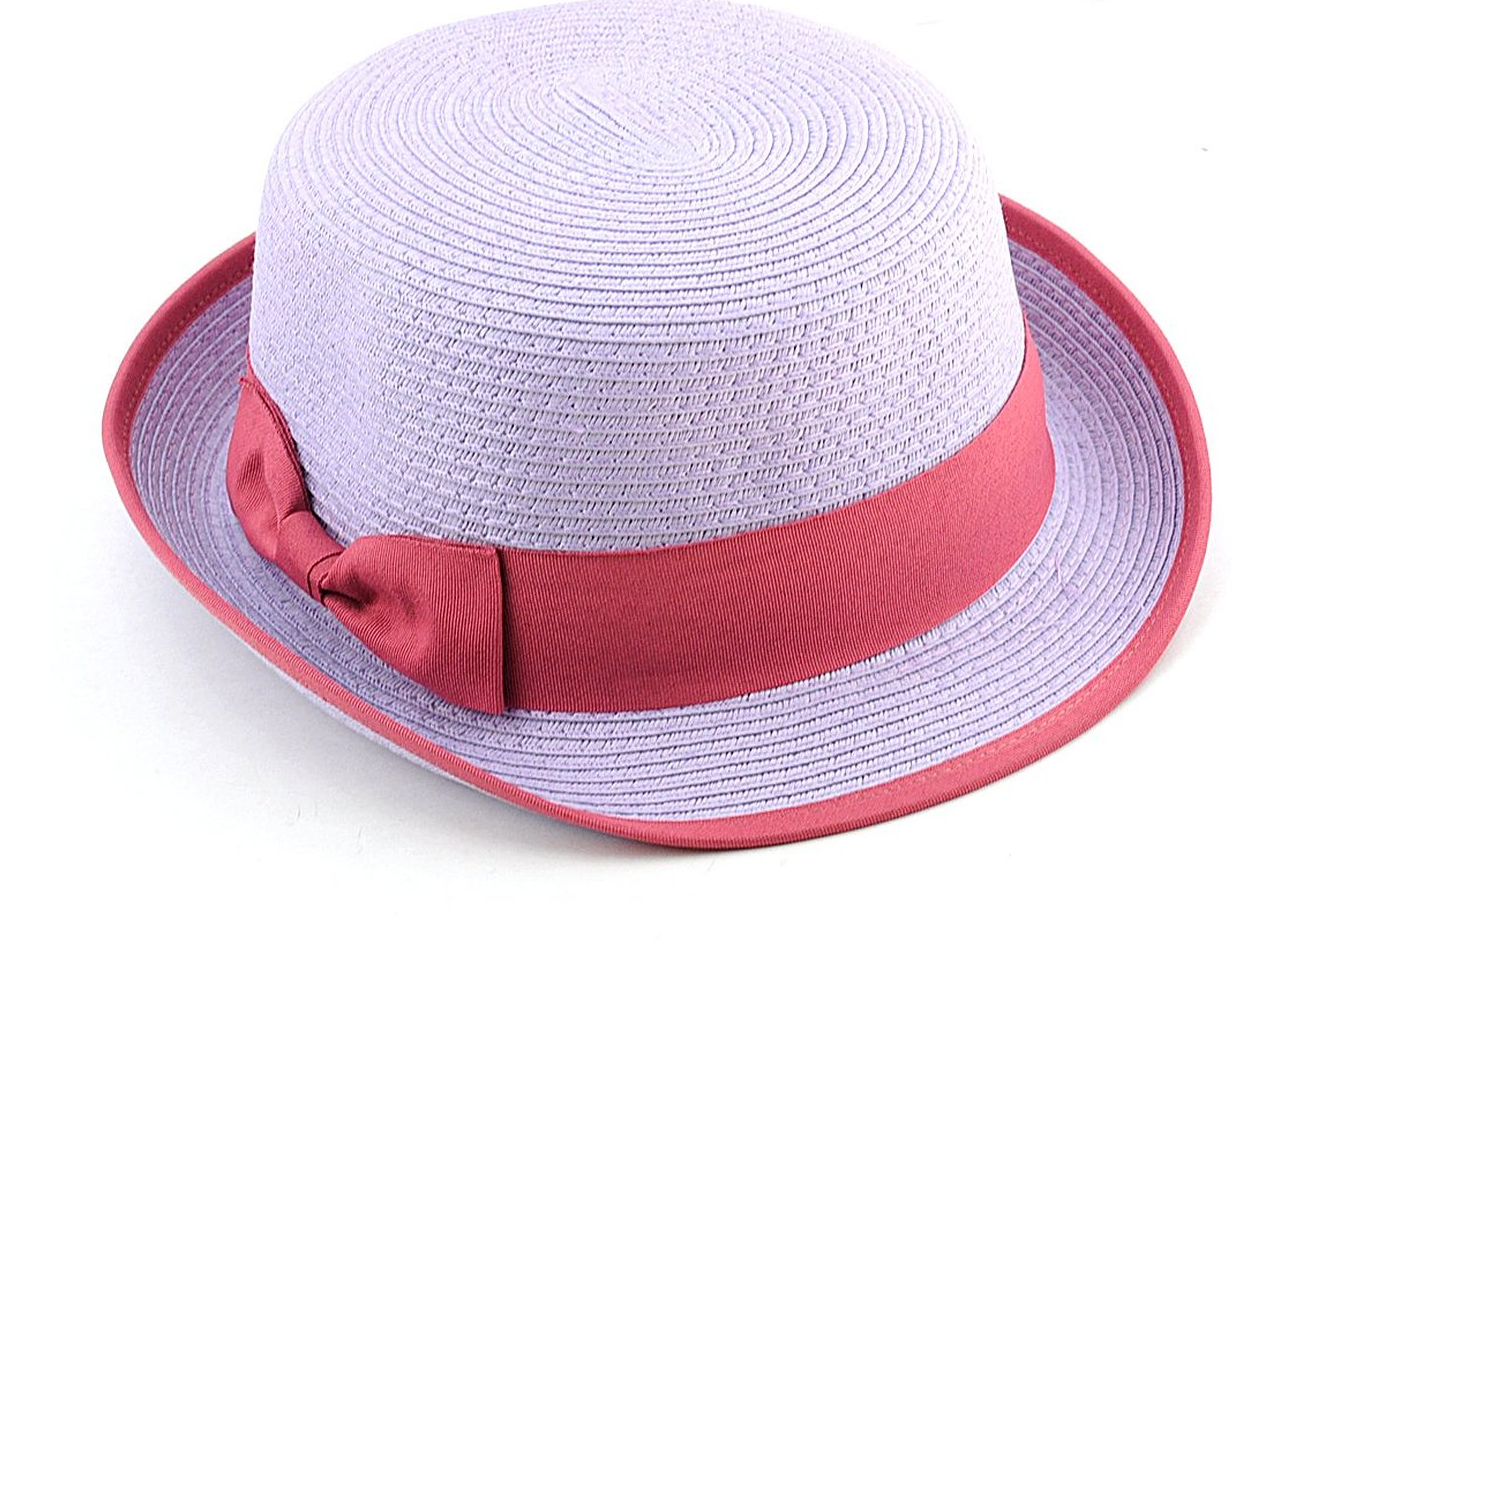 NYfashion101 Stylish Flat Top Paper Woven Porkpie Bucket Hat w/ Solid Color Bow